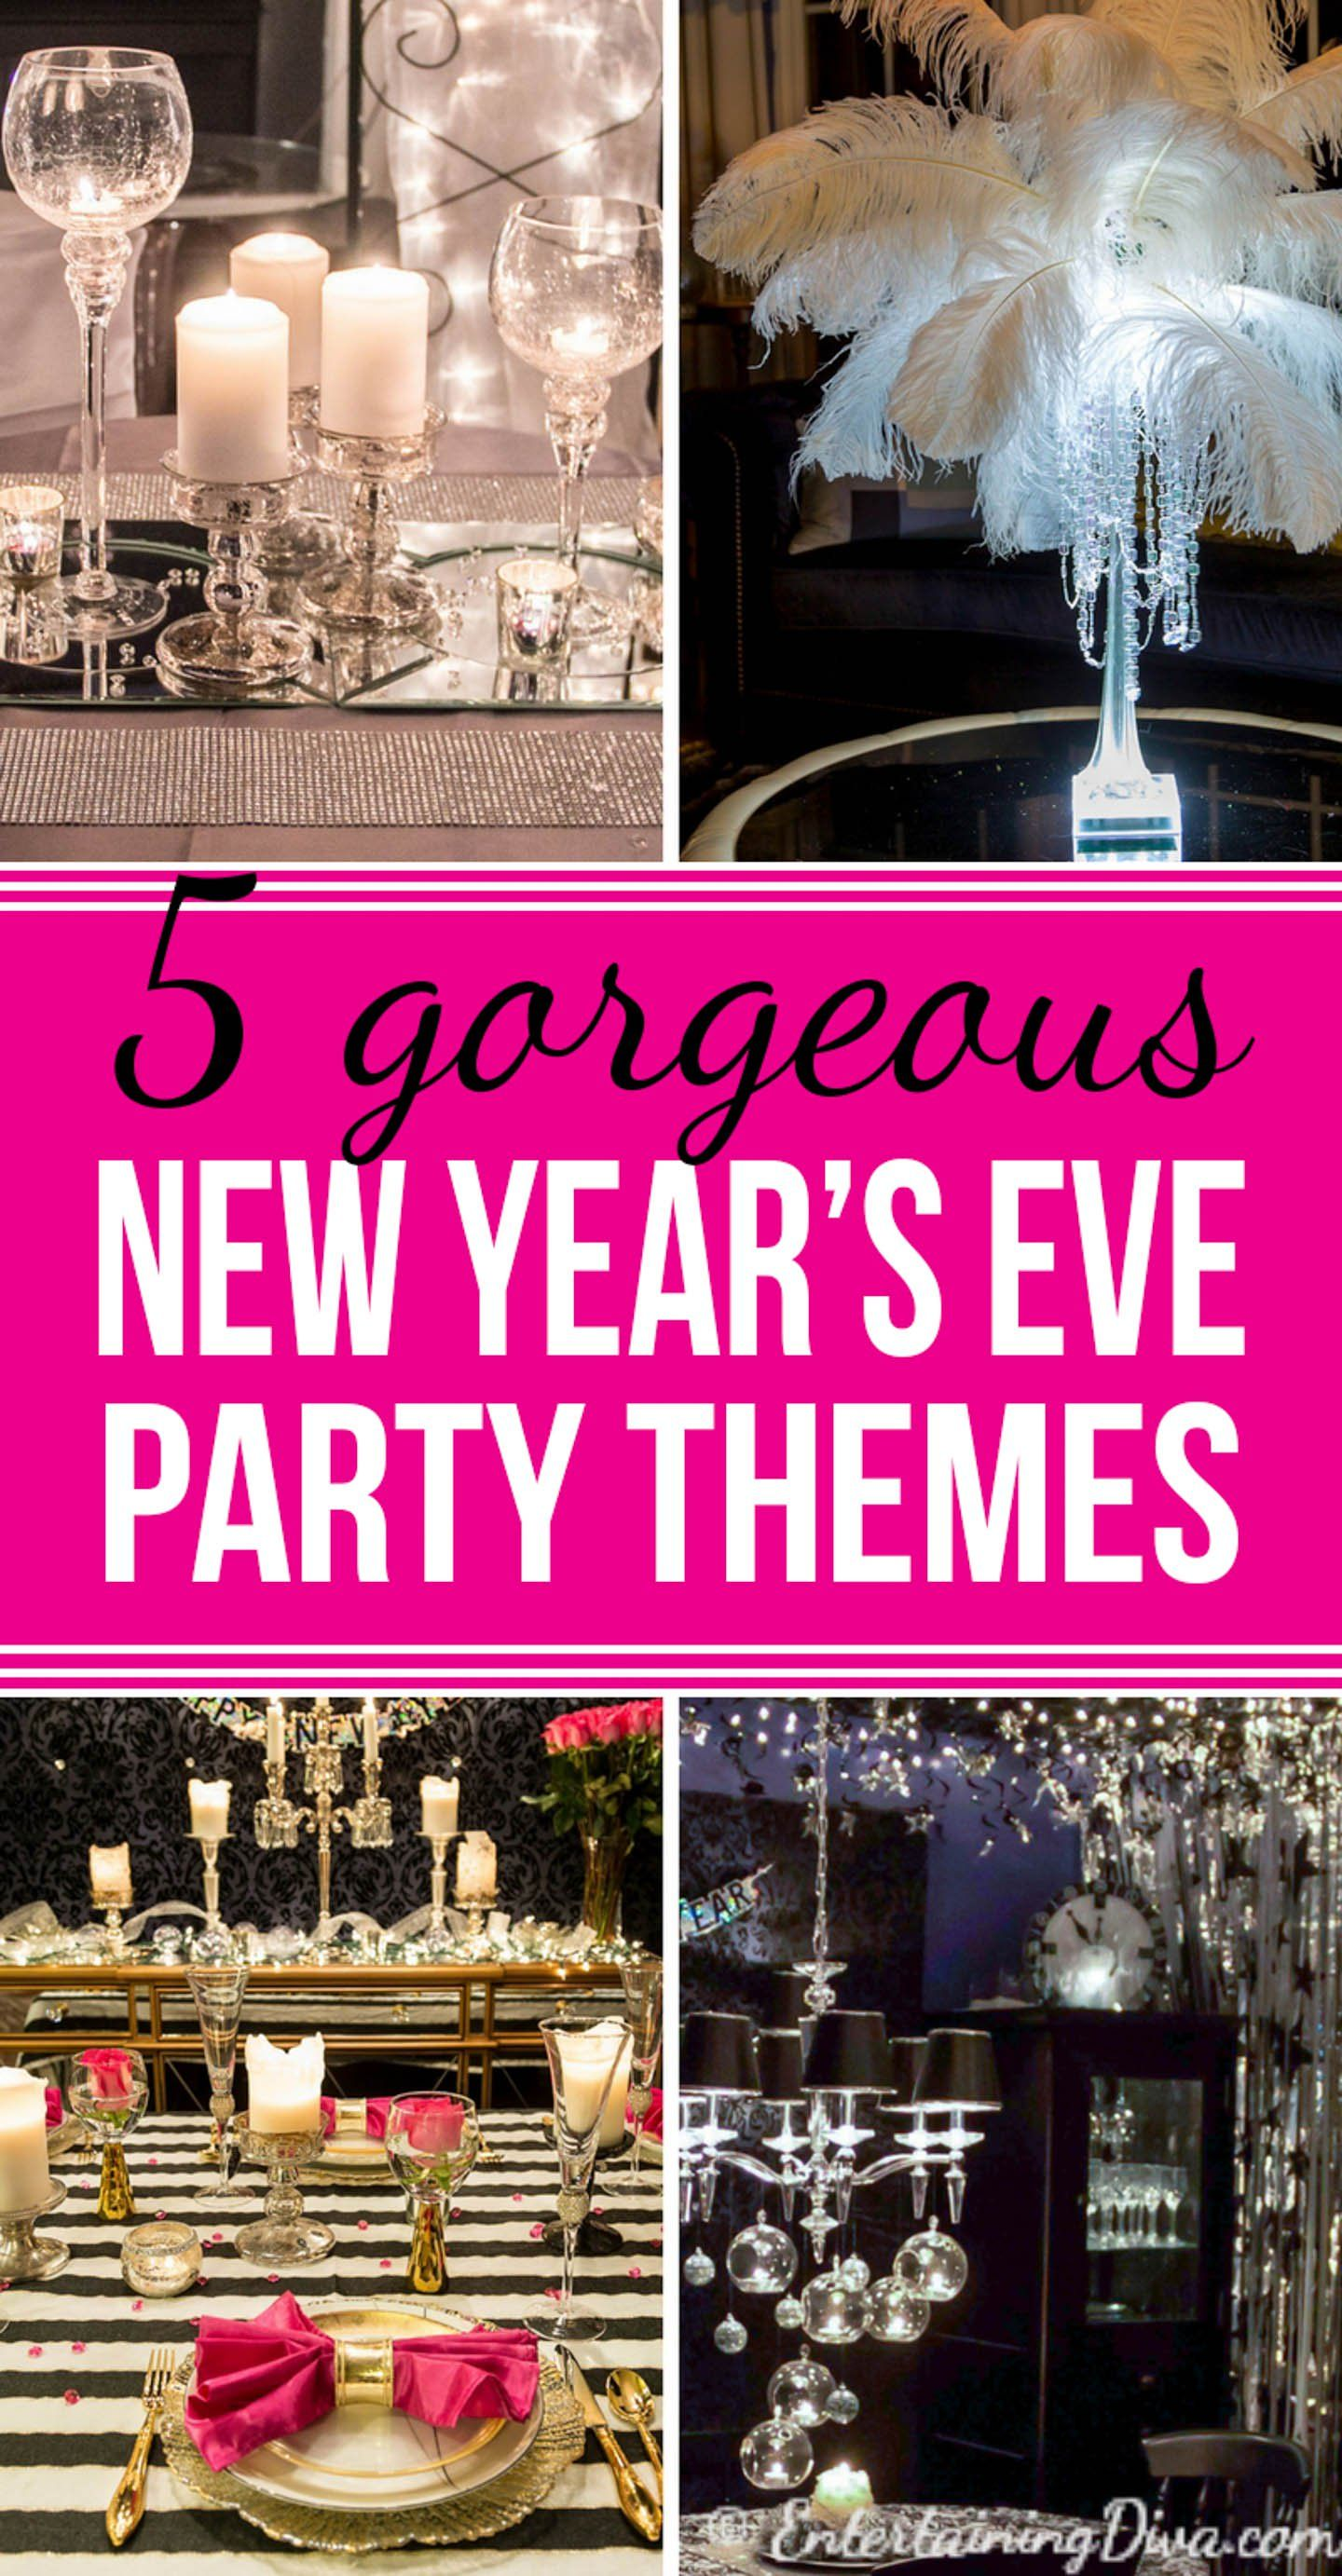 5 glam new year s eve party themes entertaining diva from house to home new year s eve party themes new years party themes elegant party themes 5 glam new year s eve party themes